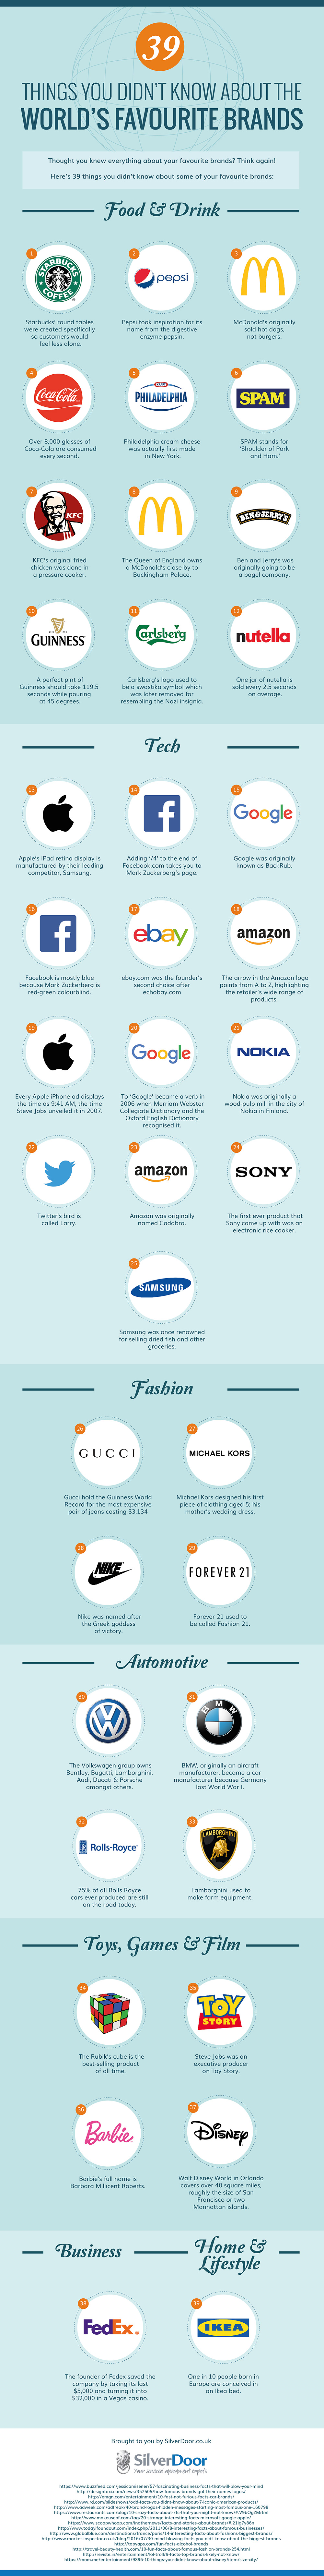 Facts About Your Favorite Brands [Infographic]